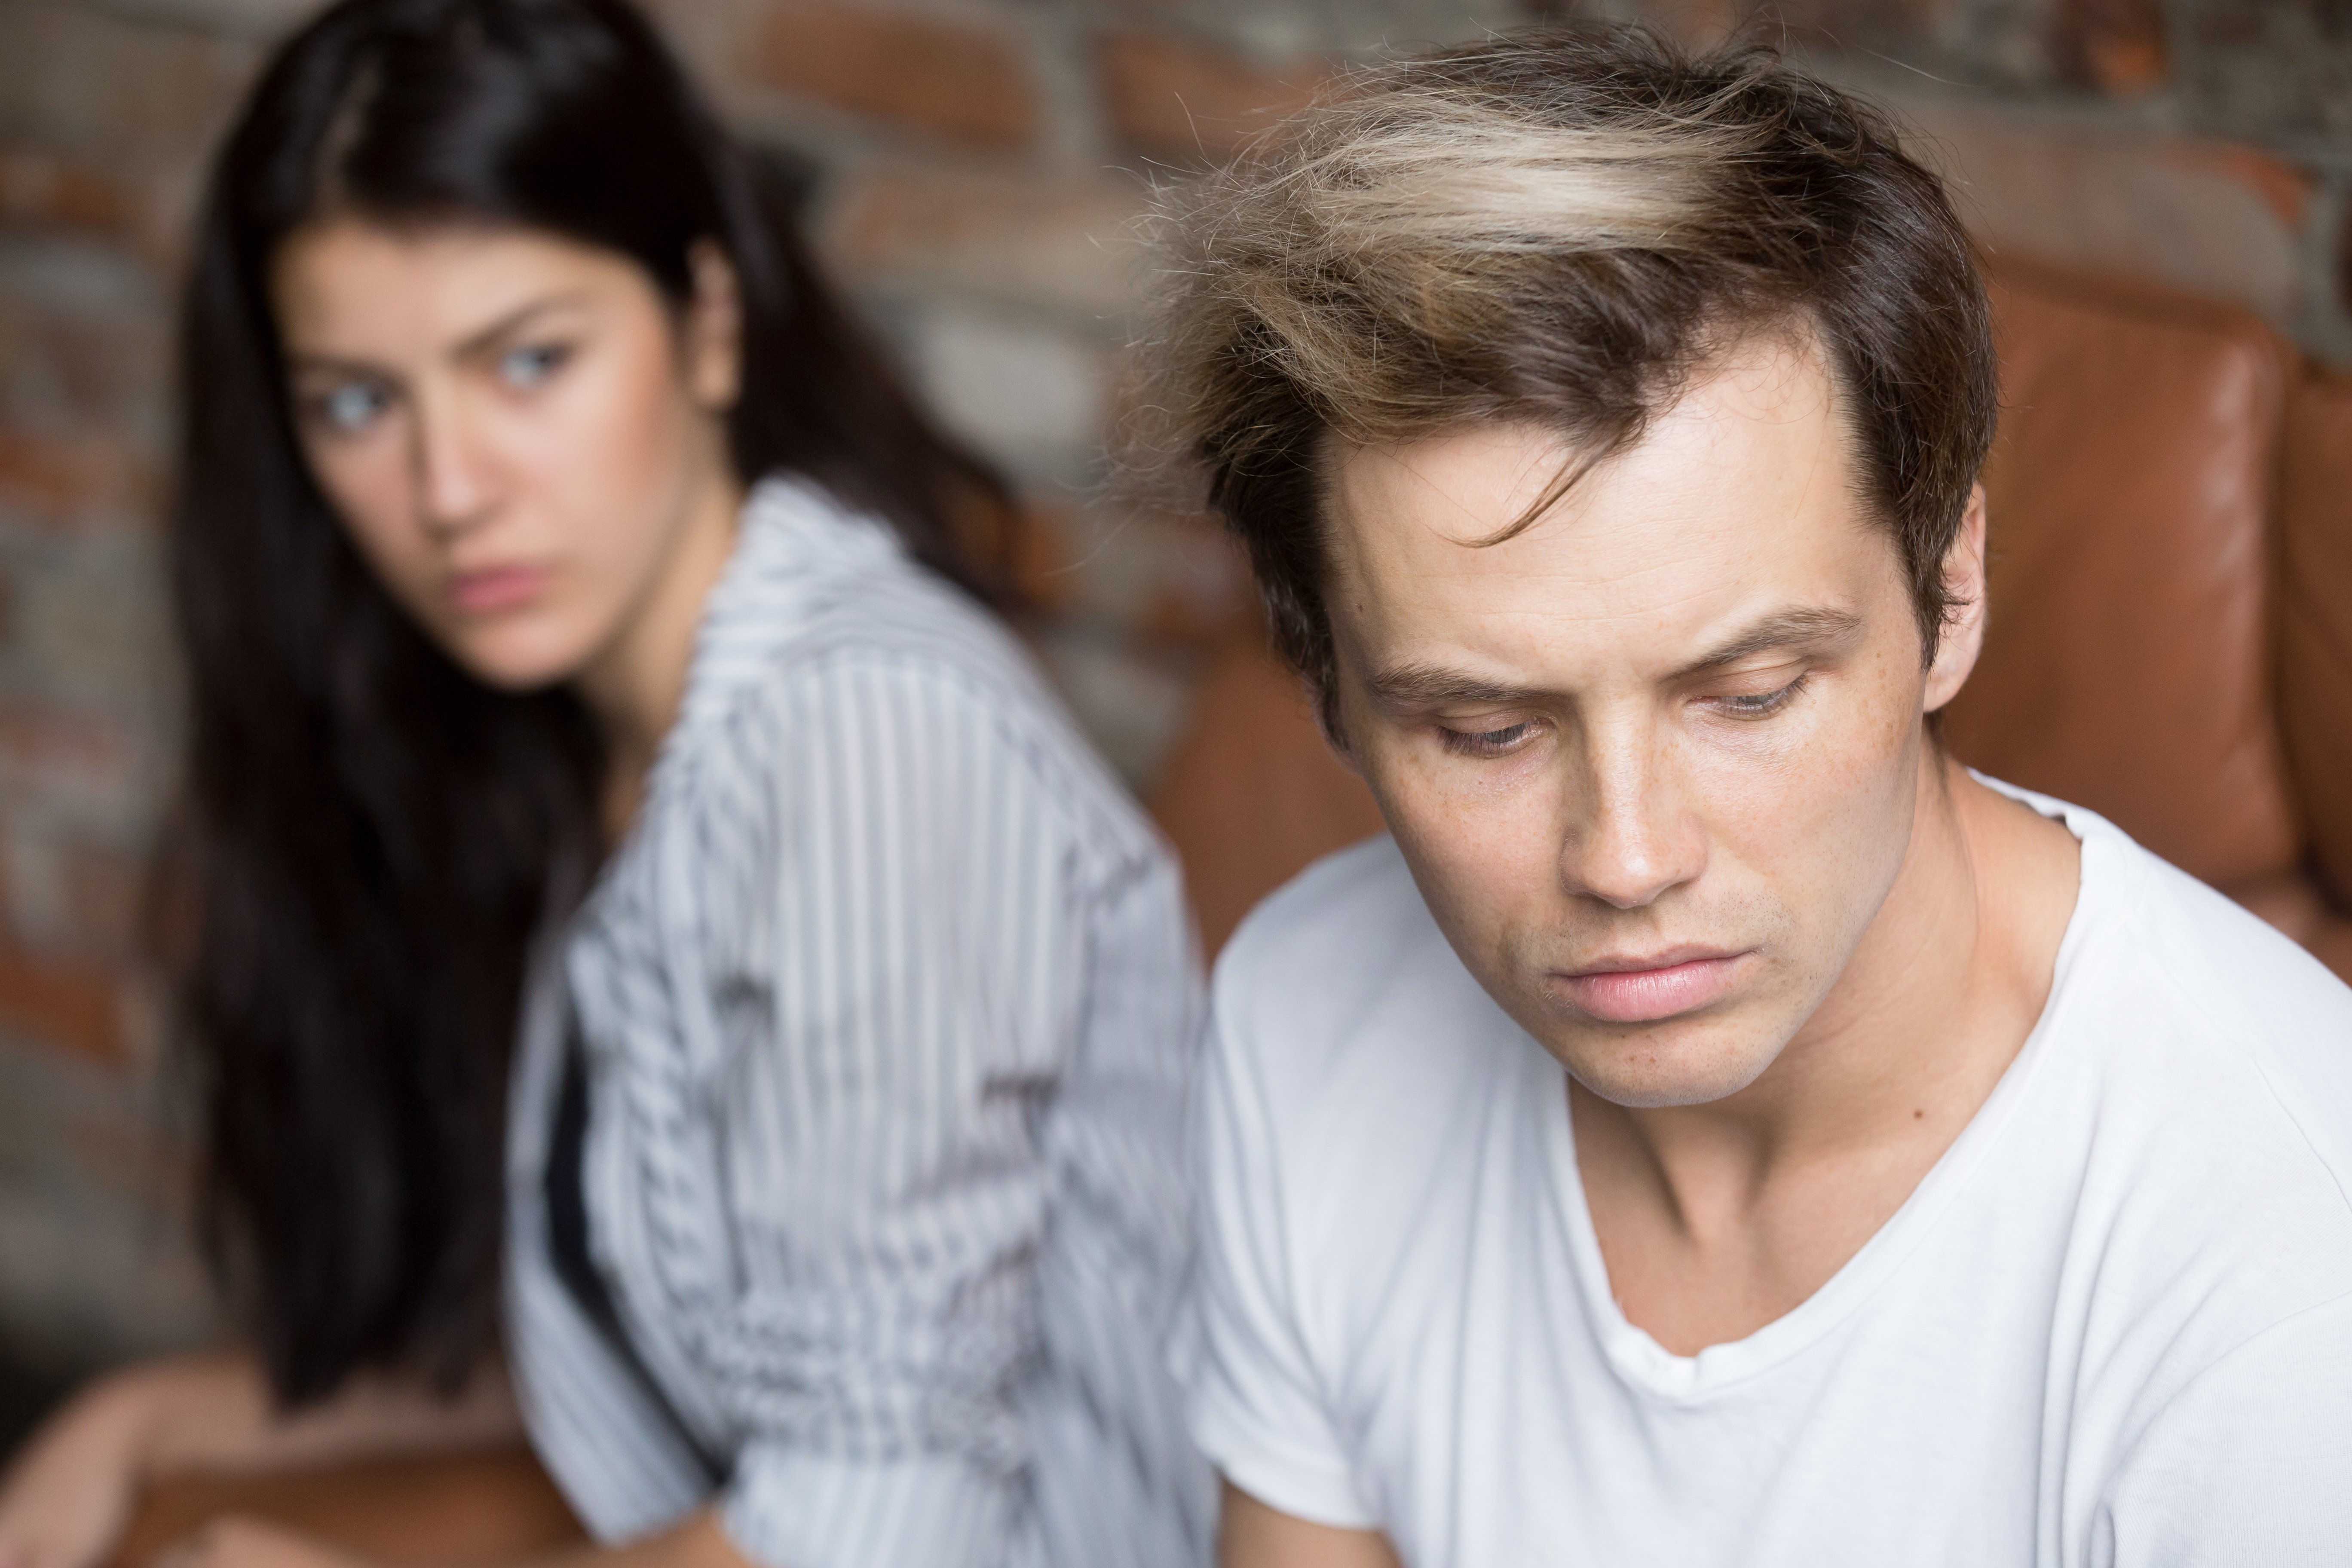 Couple angry at each other | Photo: Shutterstock